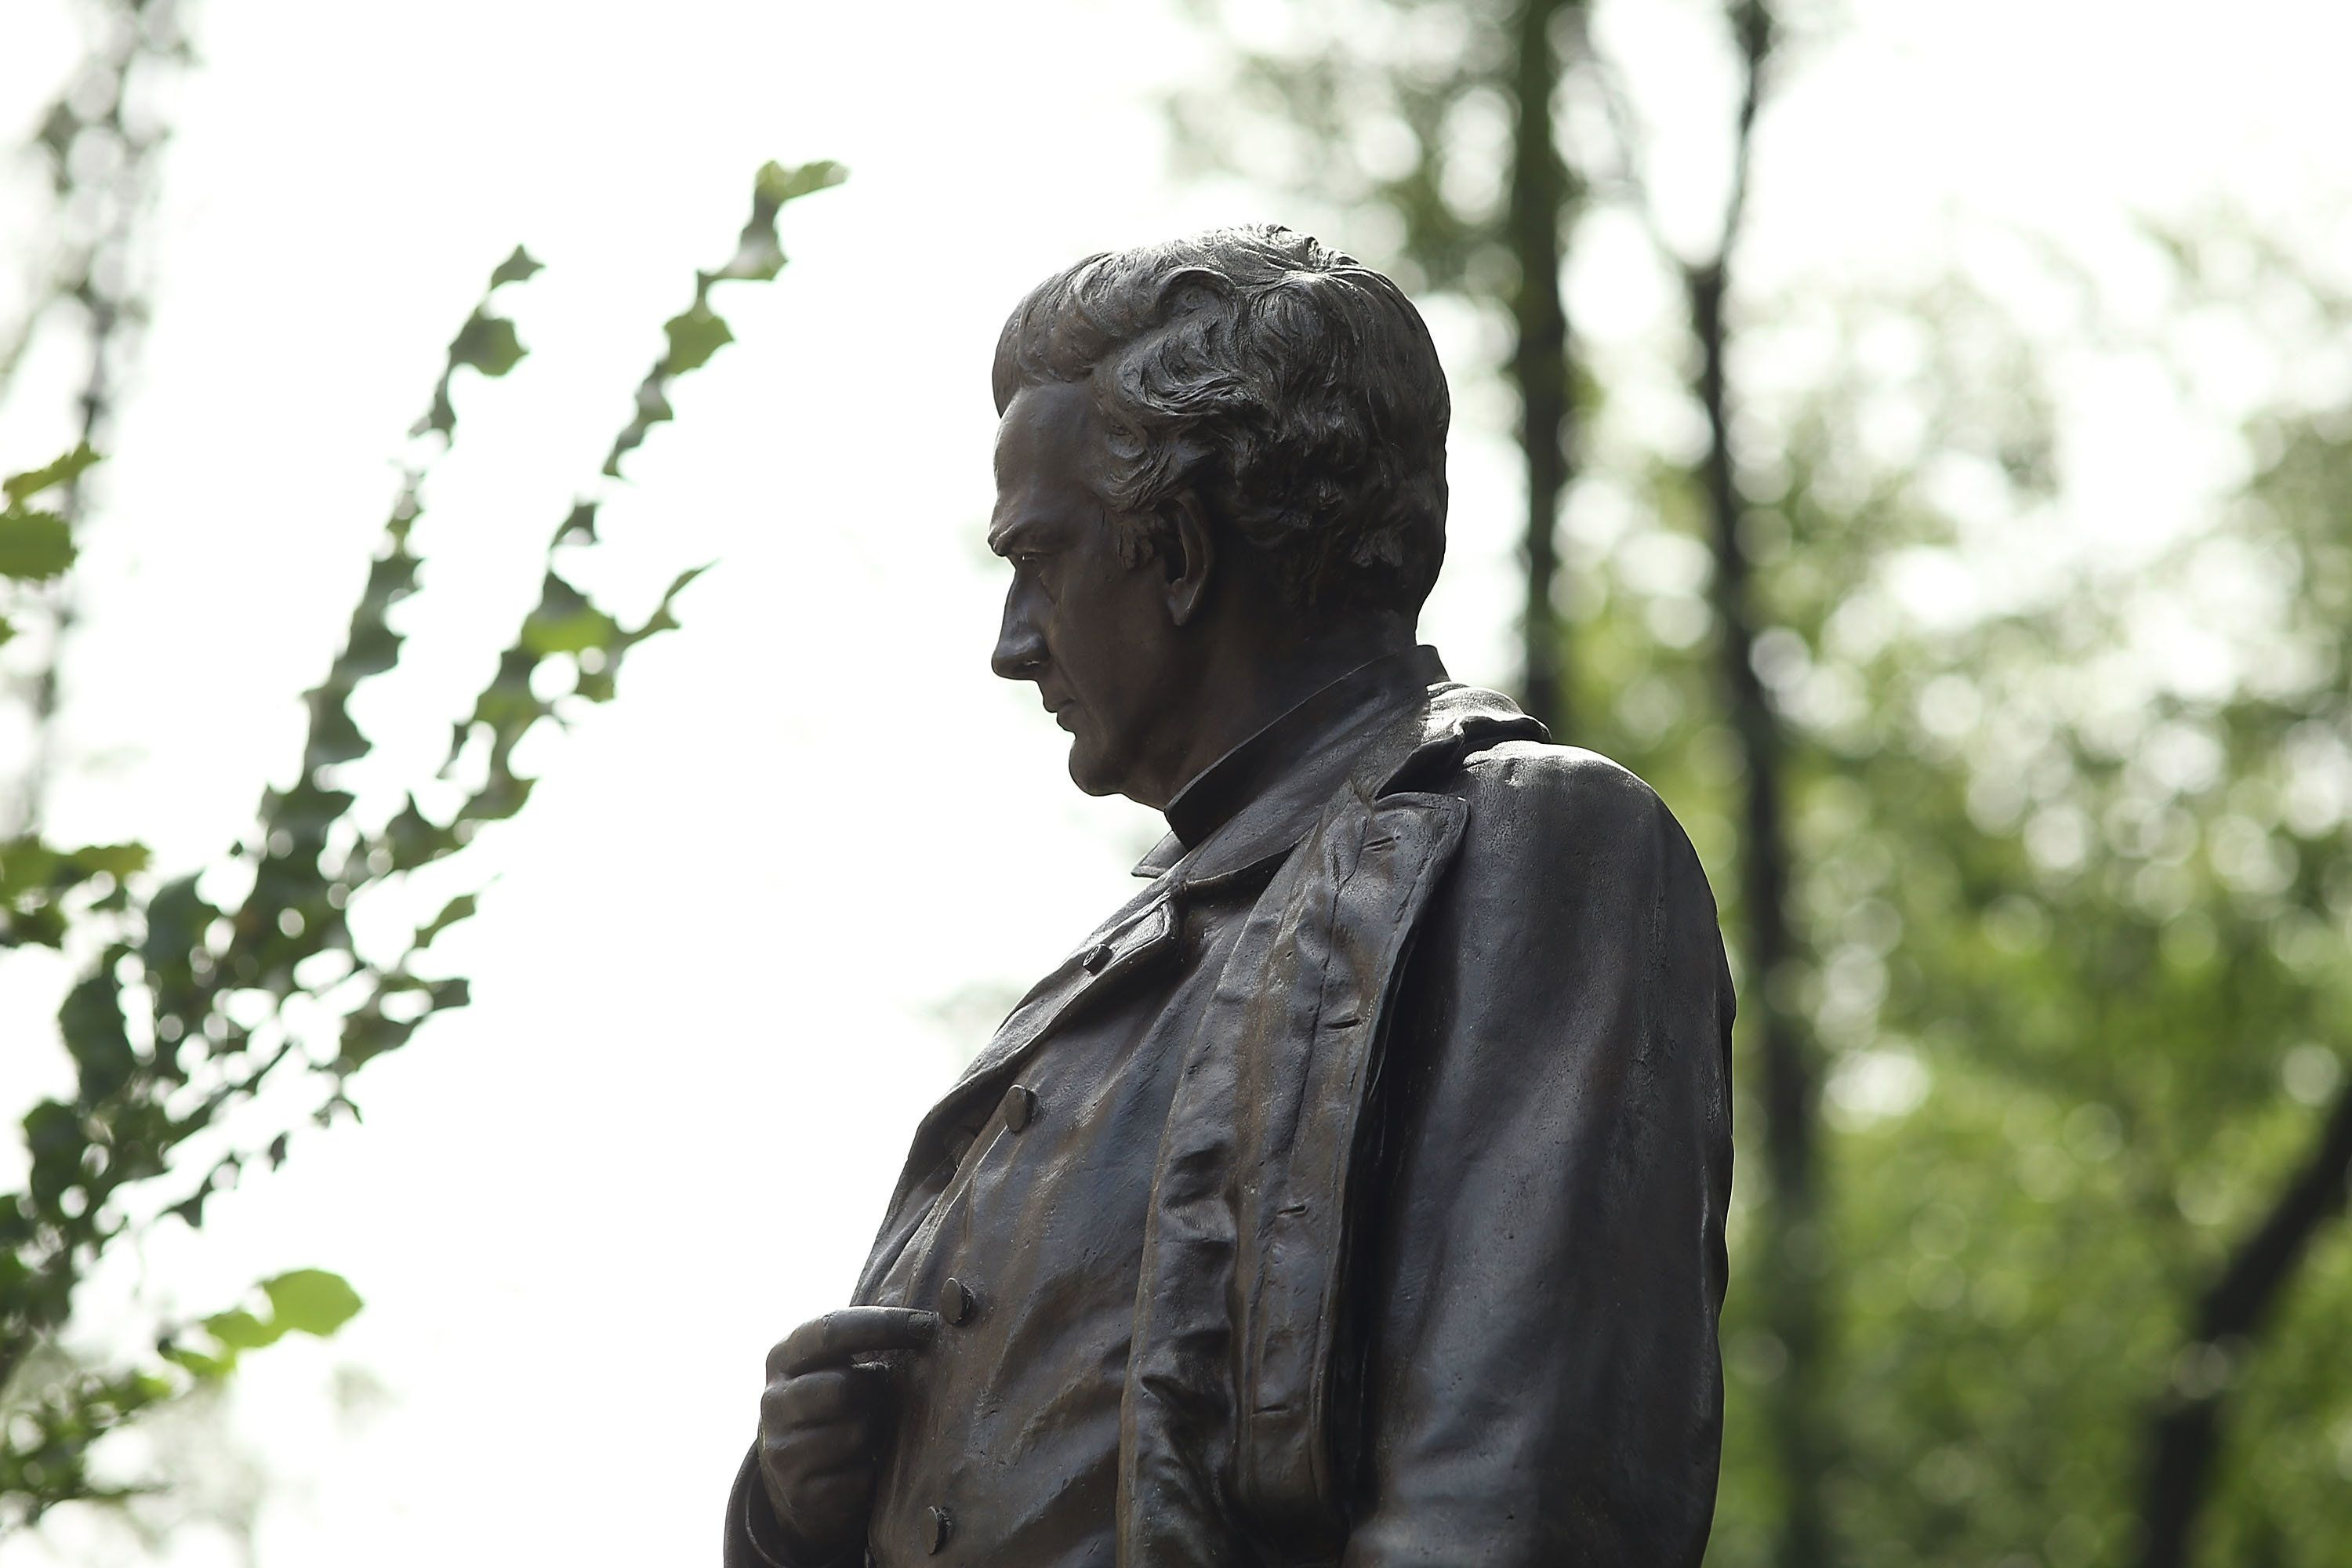 NEW YORK, NY - AUGUST 23:  A statue of J. Marion Sims, a surgeon celebrated by many as the father of modern gynecology, stands along an upper Manhattan street on August 23, 2017 in New York City. Following the recent violence in Charlottesville, many politicians, activists and citizens are calling for monuments dedicated to Confederate-era and other controversial figures to be taken down. Many of Sims medical breakthroughs came from experimenting on black slaves without anesthesia.  (Photo by Spencer Platt/Getty Images)